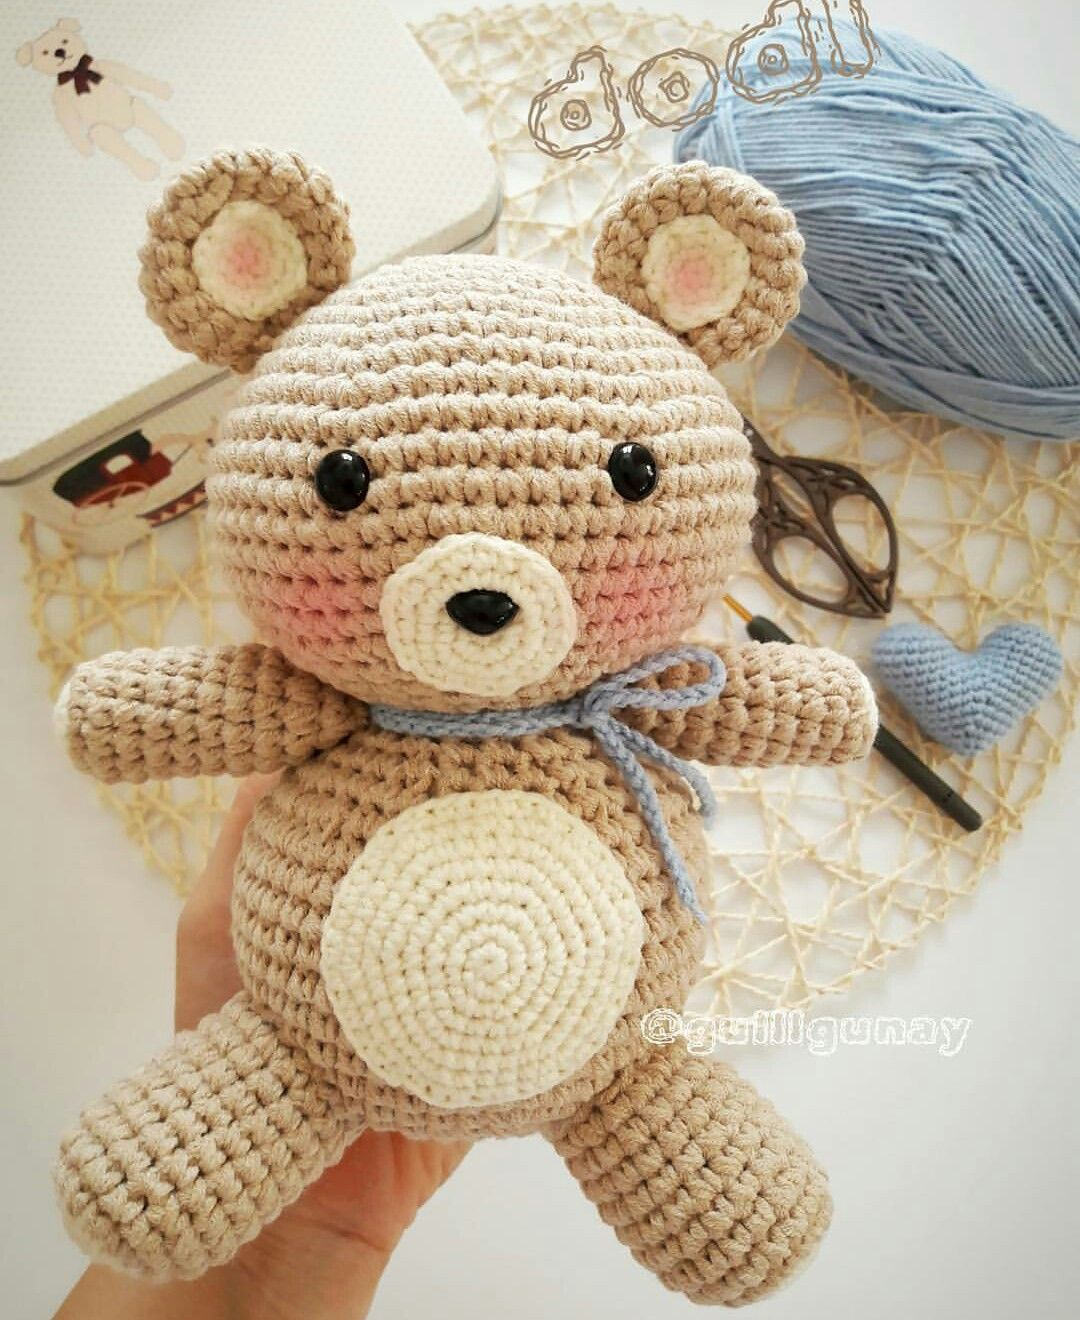 Pin de Amifriends en crochet dolls_ amigurumis | Pinterest | Tejido